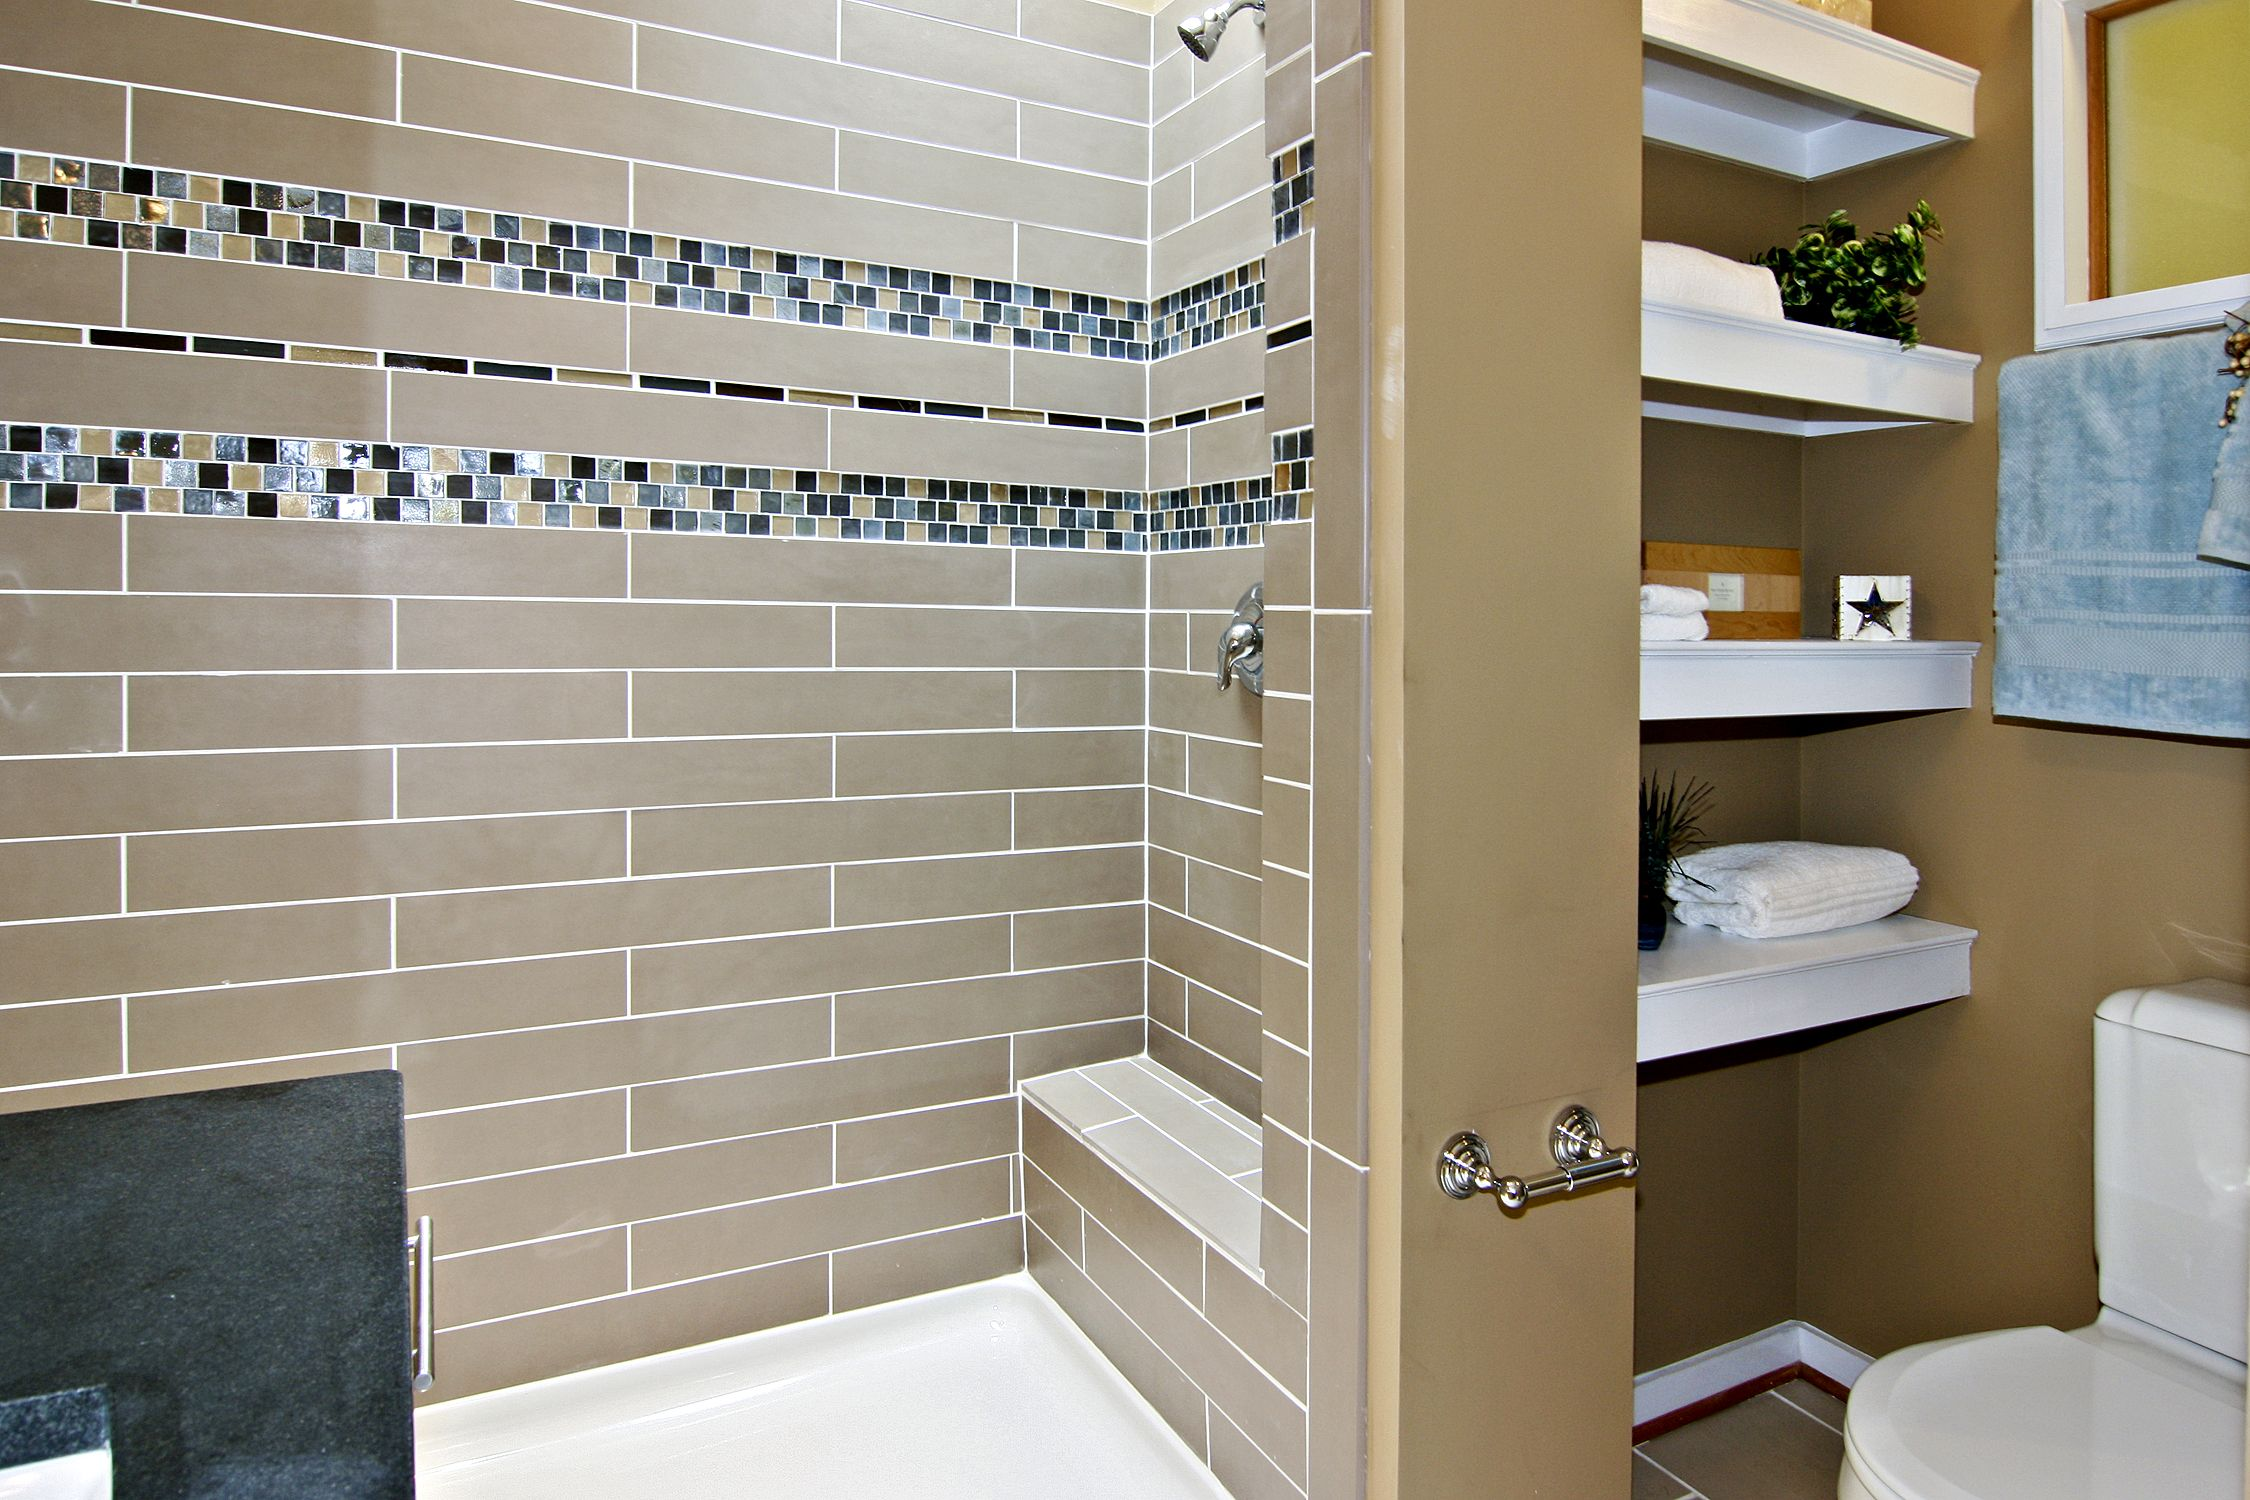 Ordinary Bathroom Ideas With Mosaic Tiles Part - 3: 1 MLN Bathroom Tile Ideas Varying Thickness Of Accent Tile